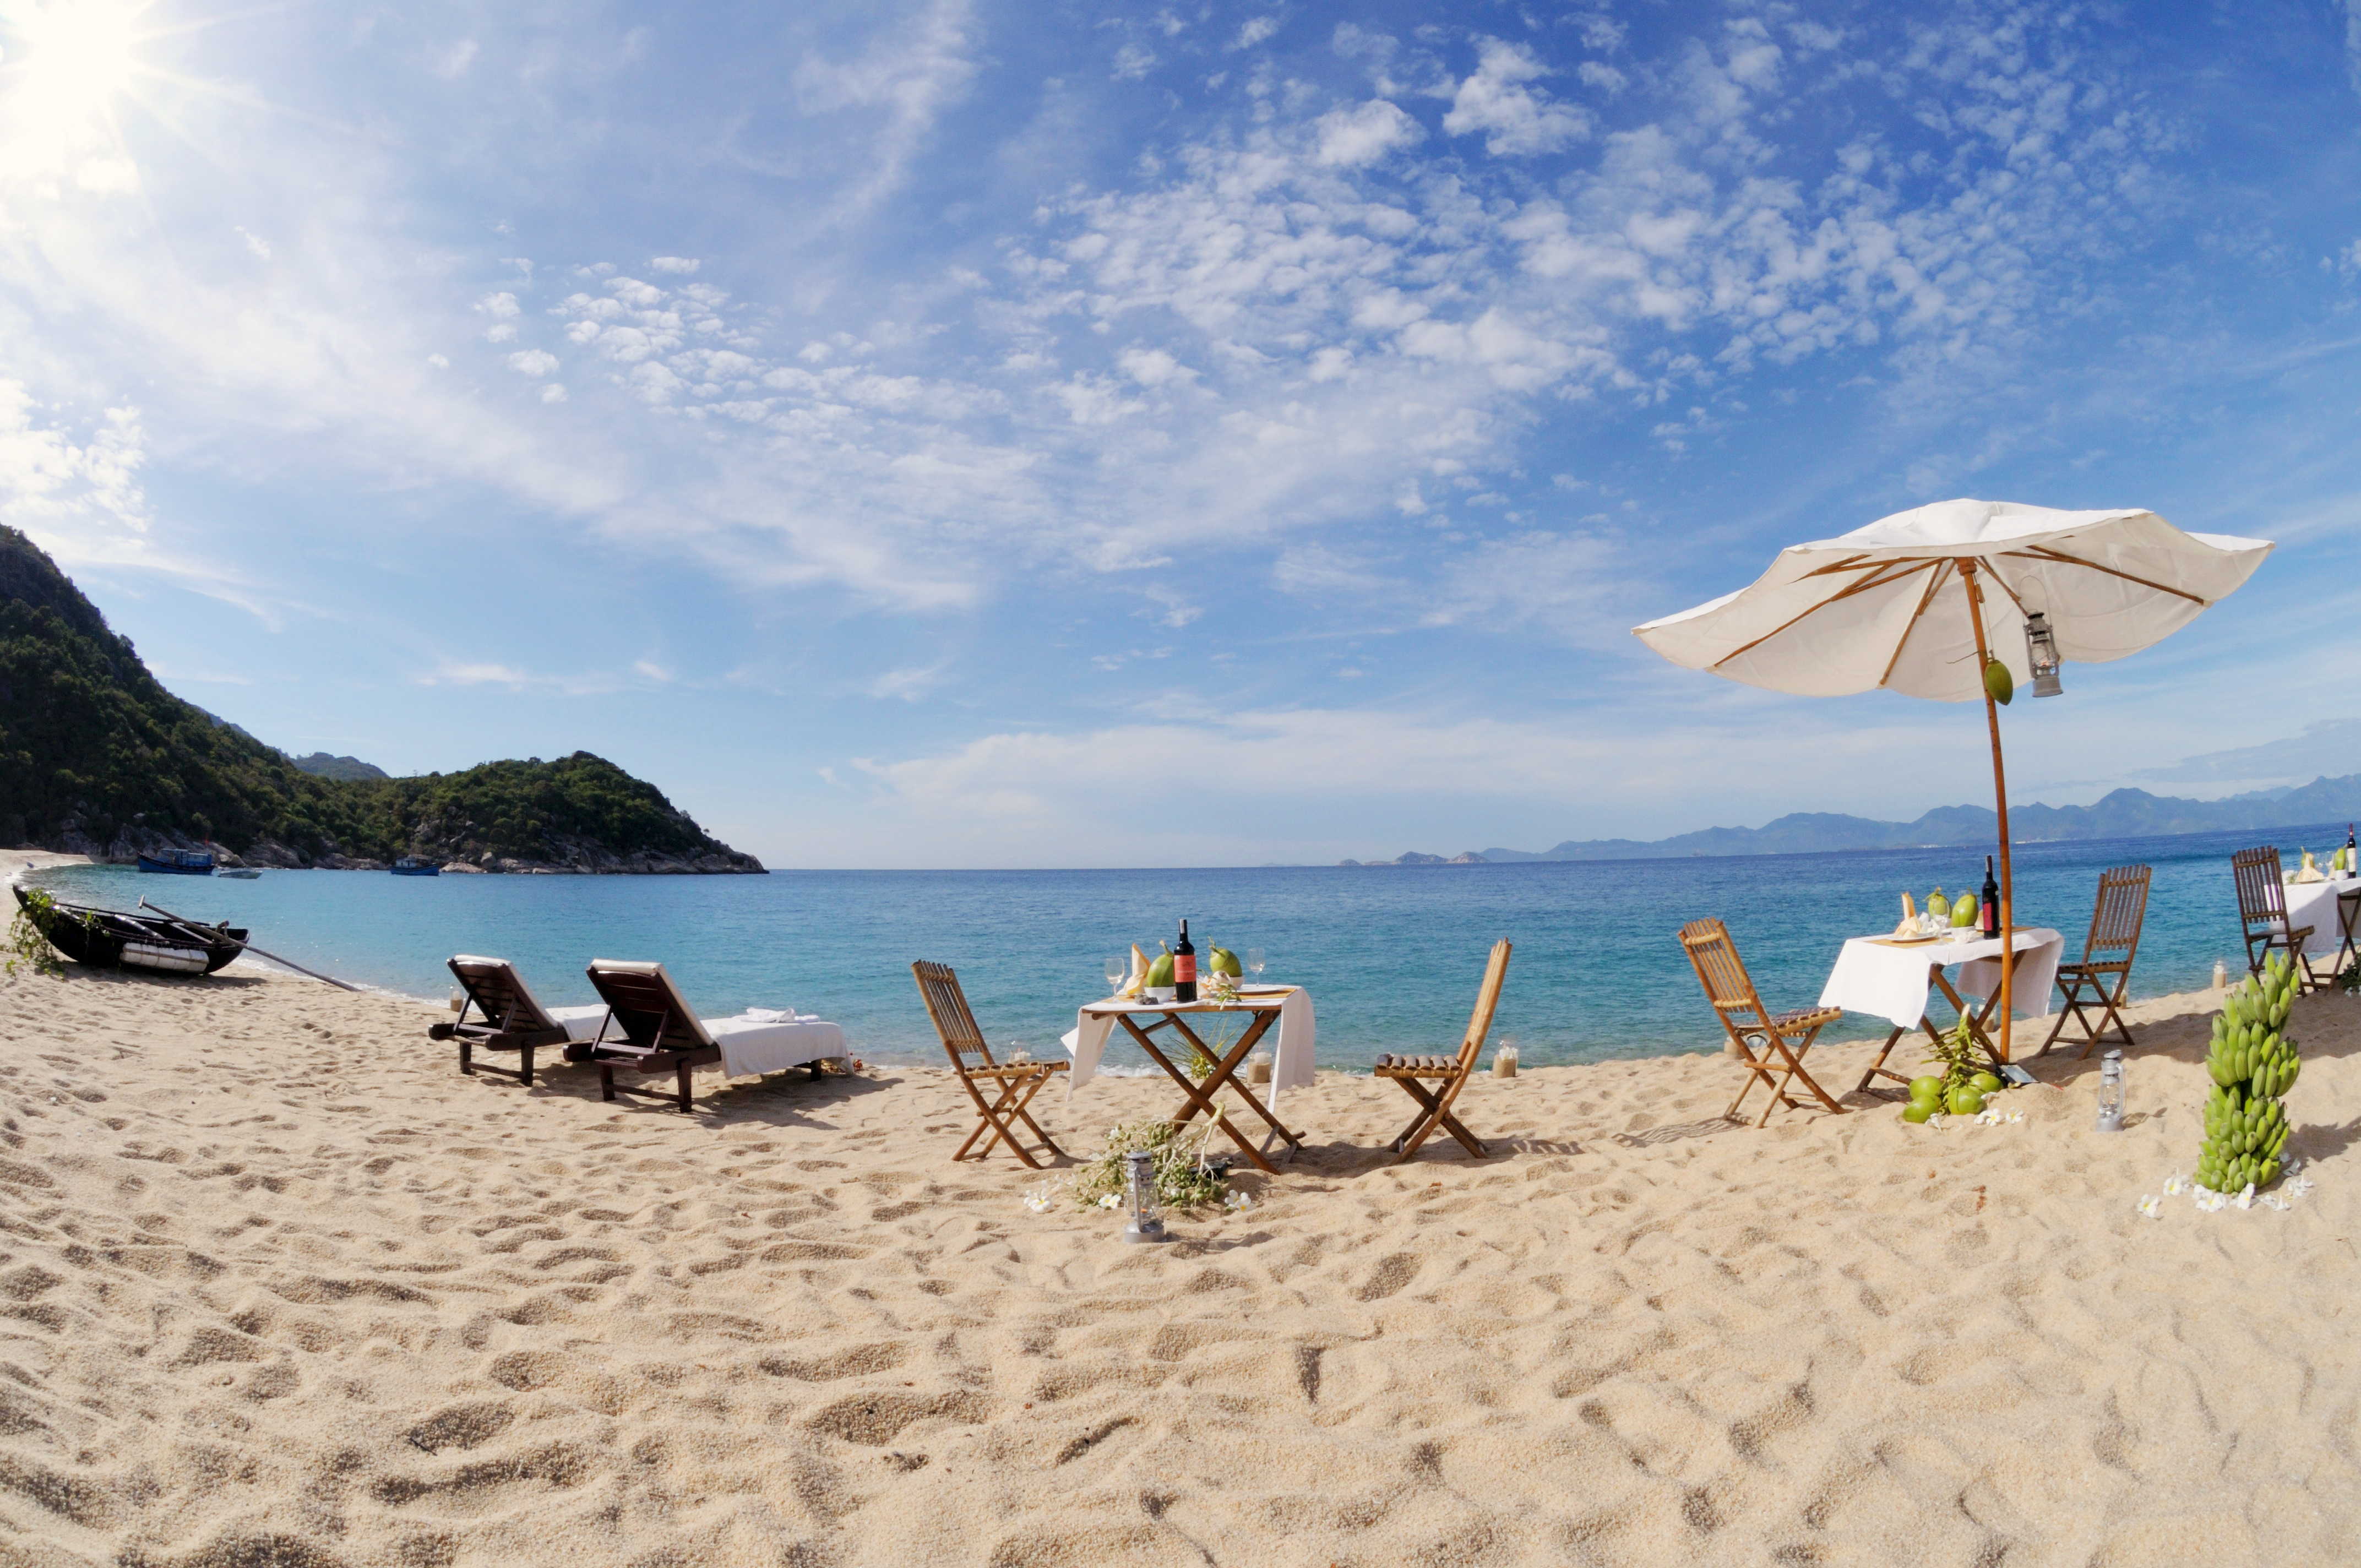 Doc Let Beach The South-Central Coasts and Highlands, Top 10 best beaches in Viet Nam